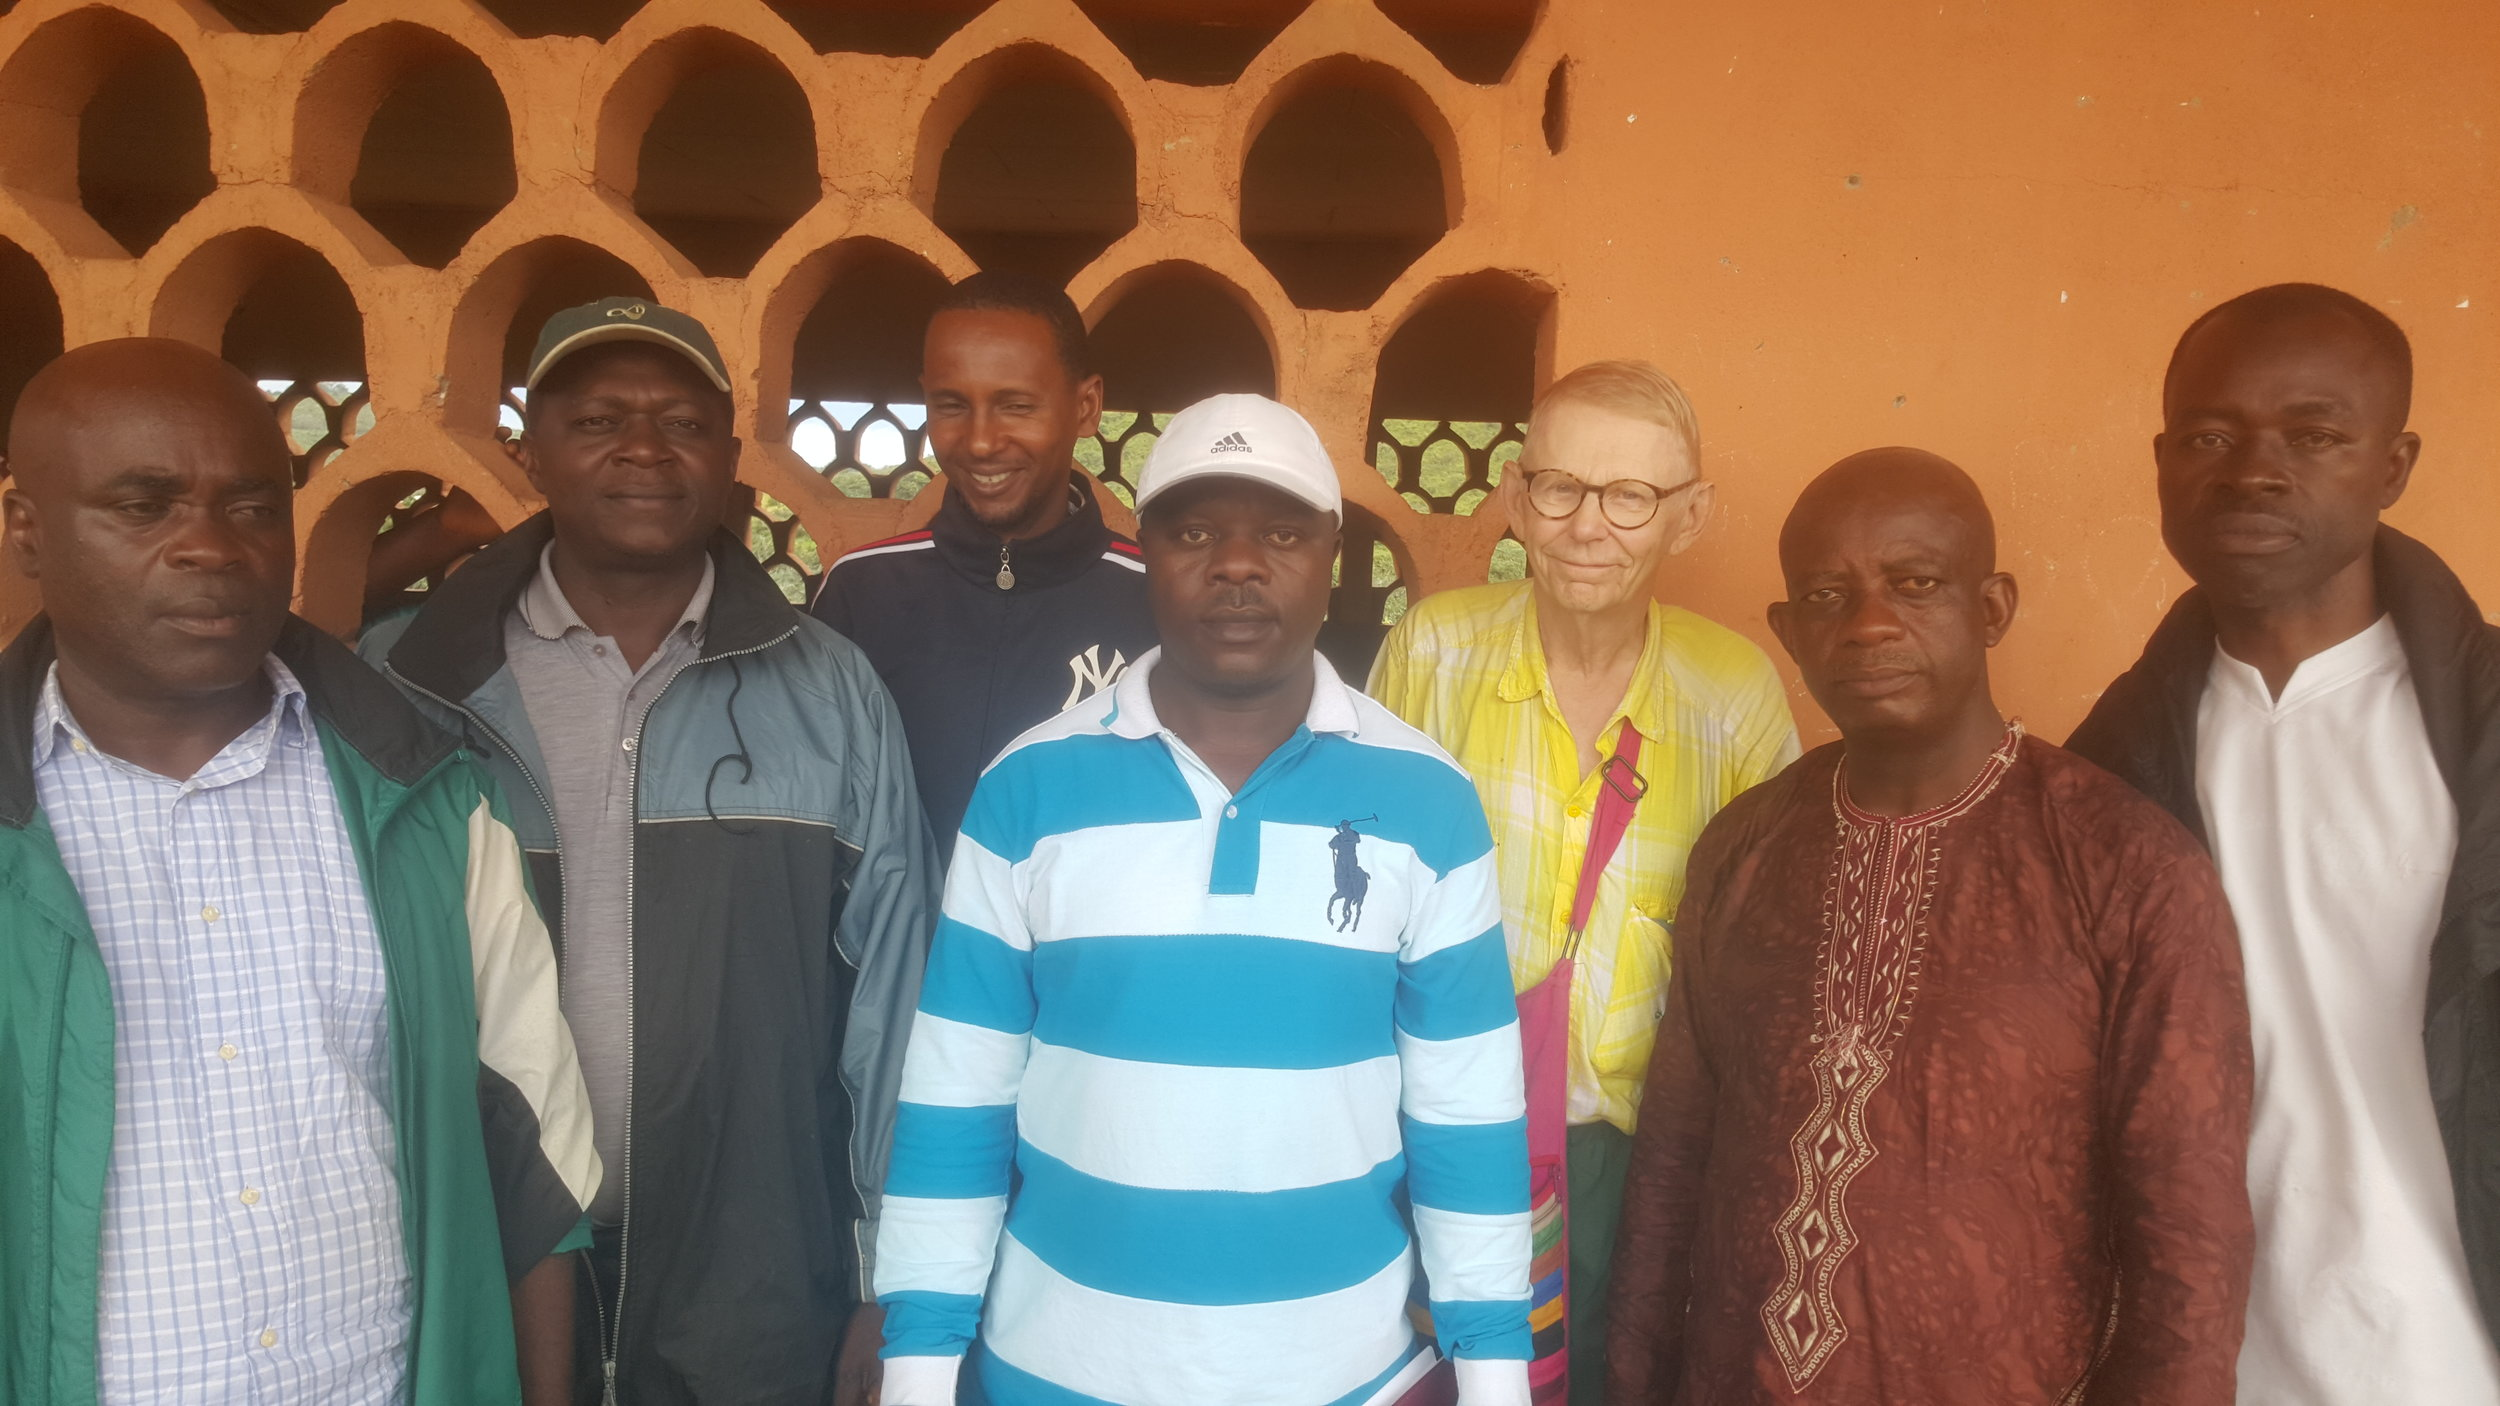 Bill Cook, of the Bill Cook foundation standing with ScholarShop's program manager (Back Row) and other community members of Upkwa. The Bill Cook Foundation donated to provide a solar panel and electricity for the Health Center in charge of Upkwa and its 4 surrounding villages.